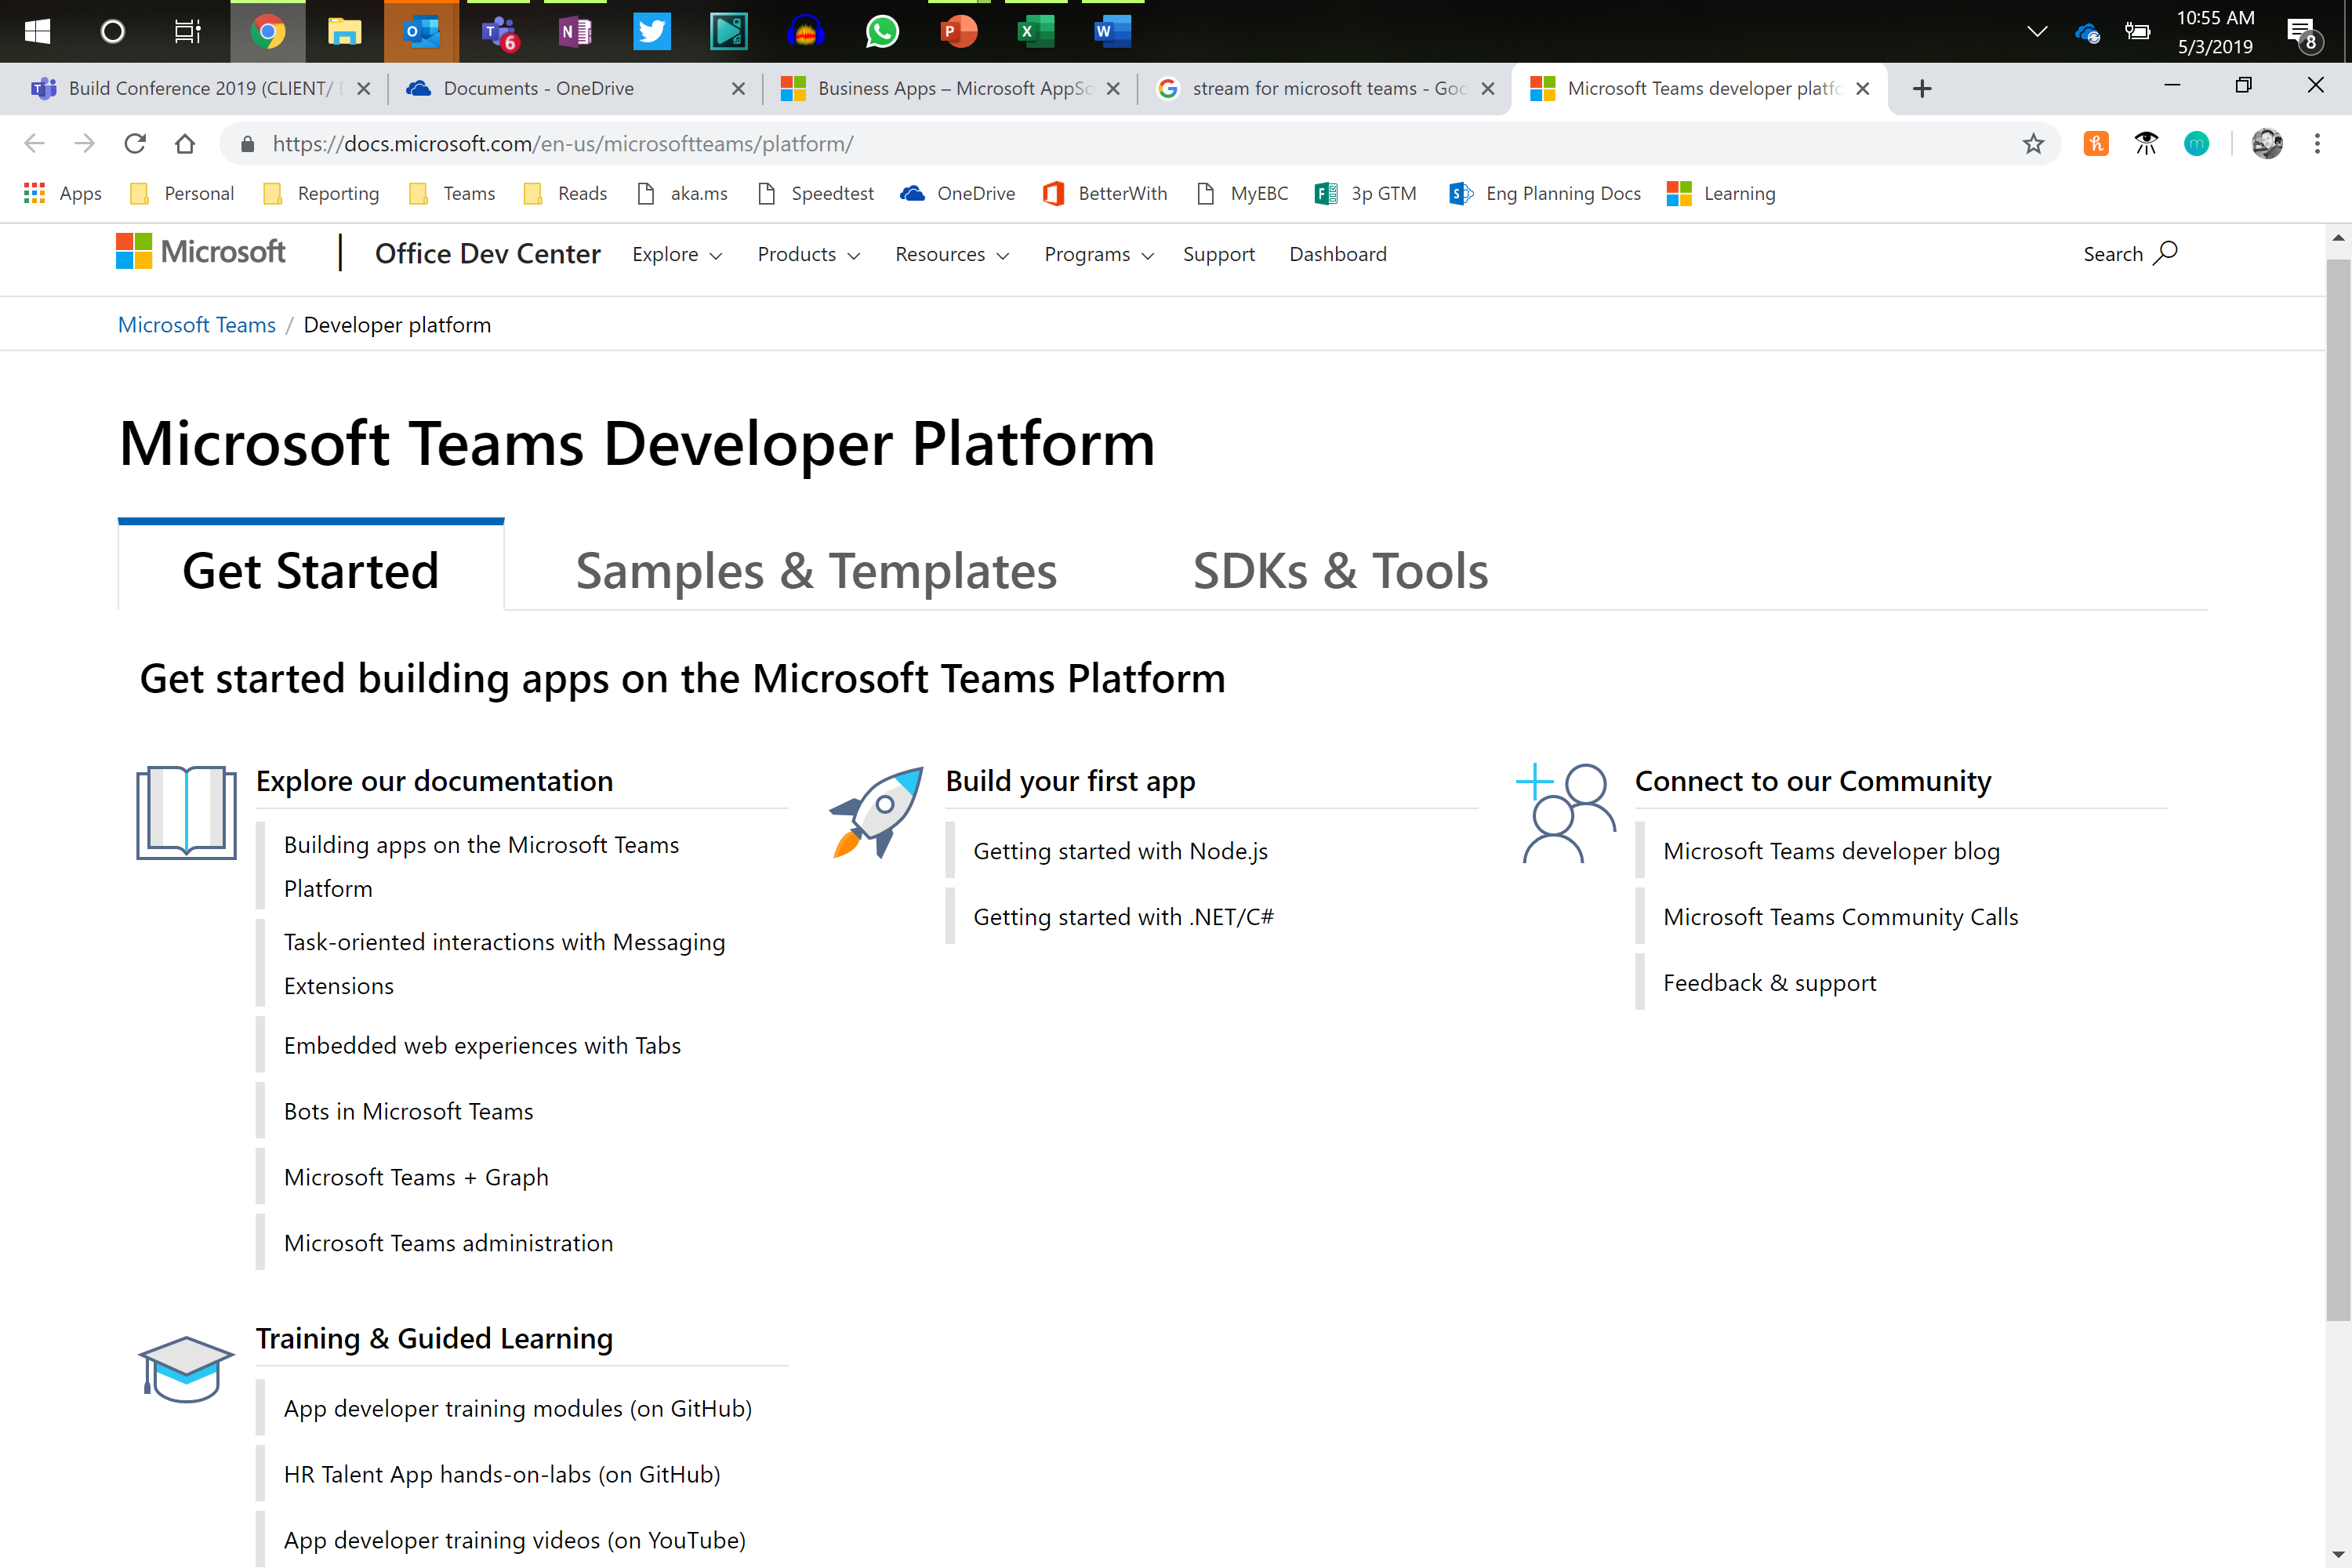 Game-Changing Teams Announcements from Build 2019